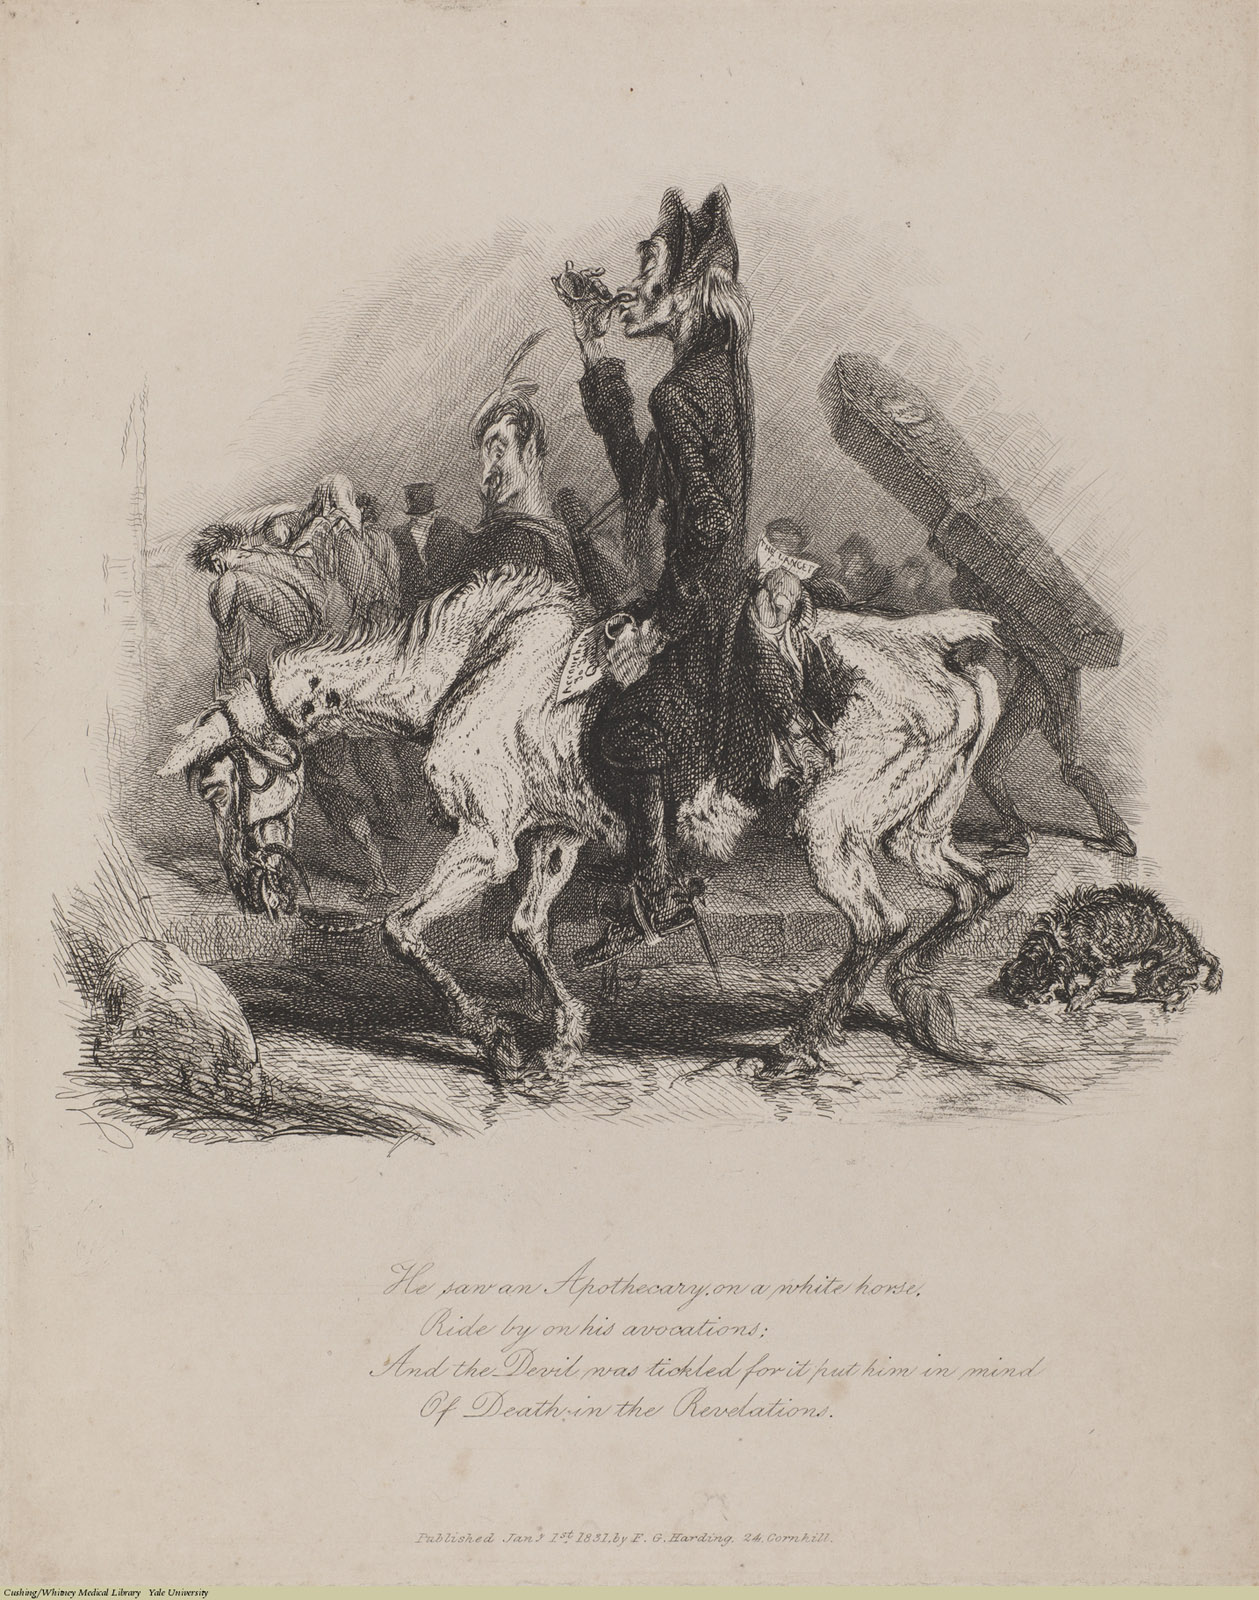 He saw an Apothecary on a white horse... Thomas Landseer, Etching, 1831. Subject: Obstetrics,Pharmacist, Devil, Snuff, The Lancet.